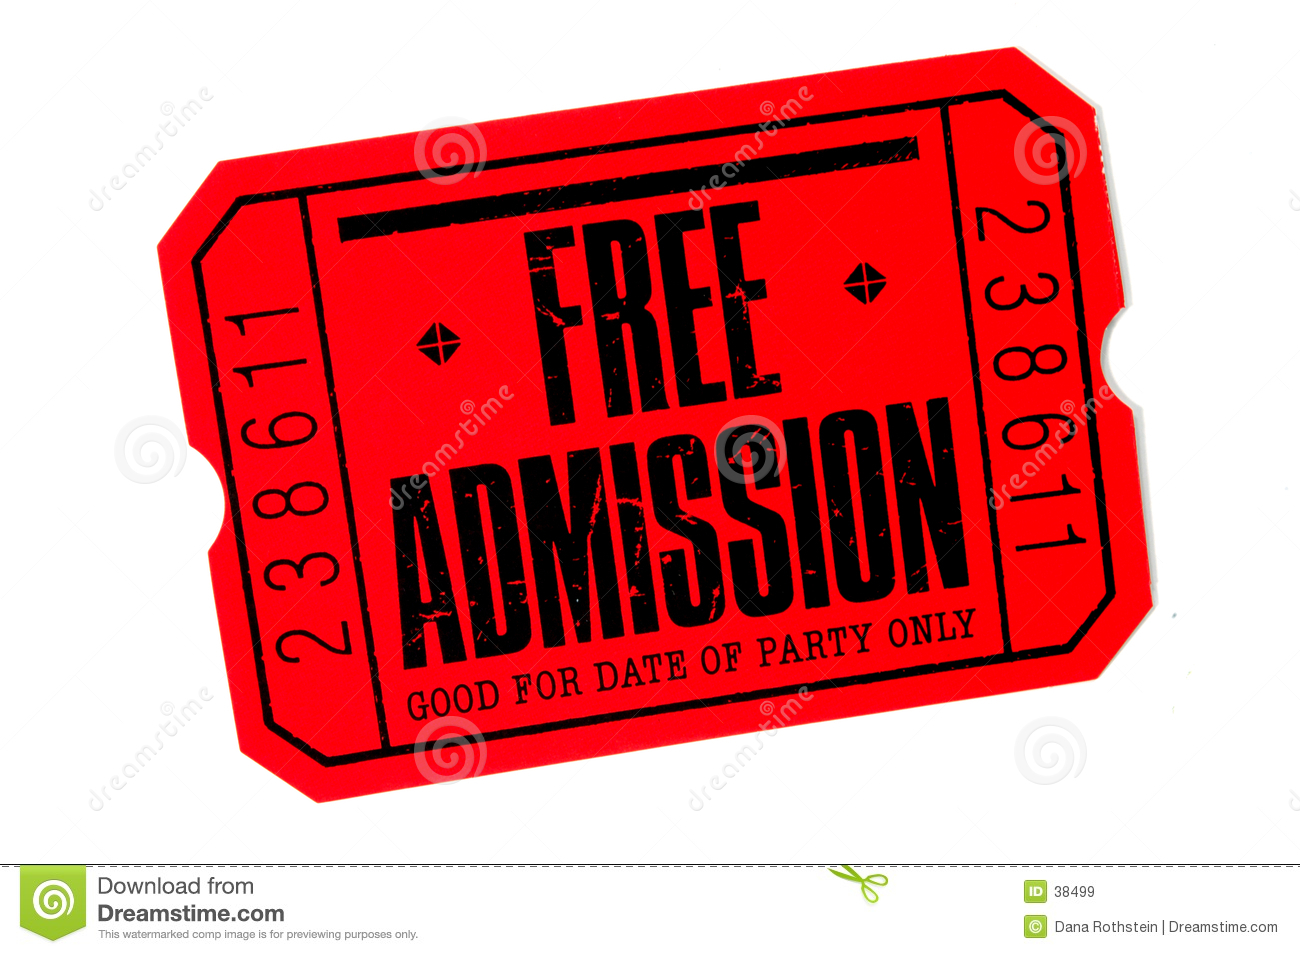 Raffle clipart admission ticket. Cliparts free download best